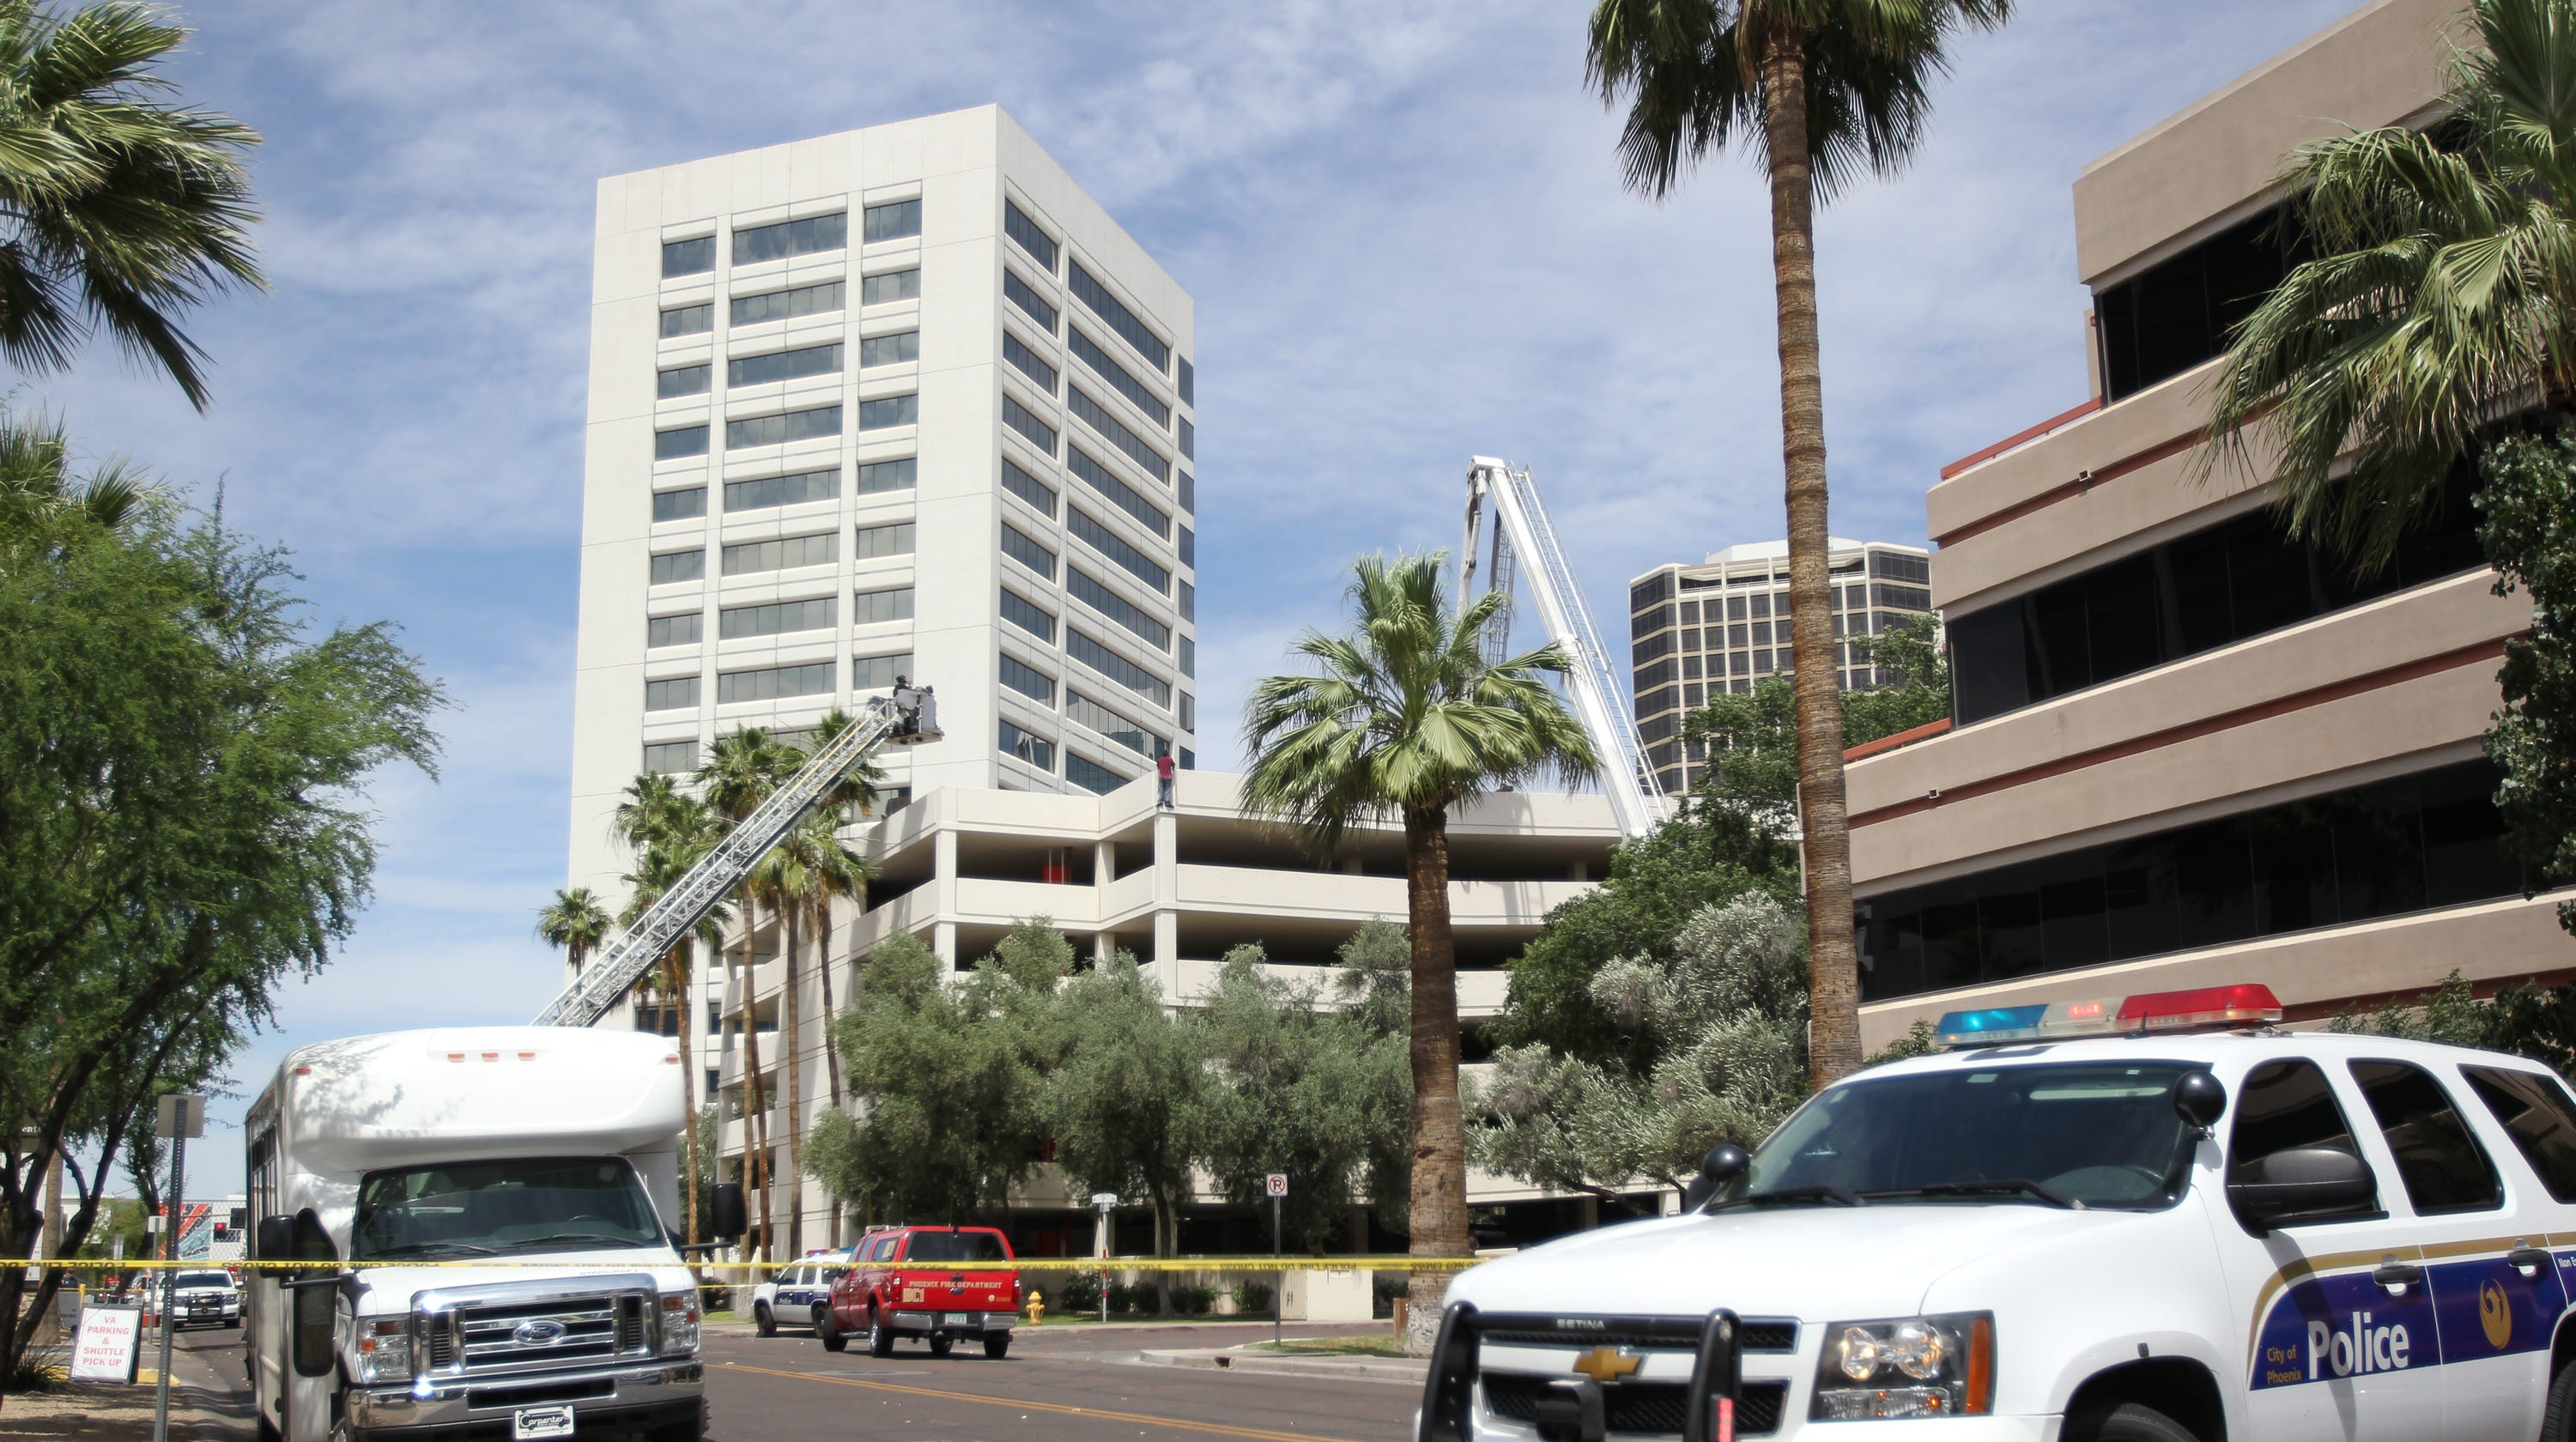 Phoenix Police Man In Crisis Atop Parking Garage Steps Down Safely